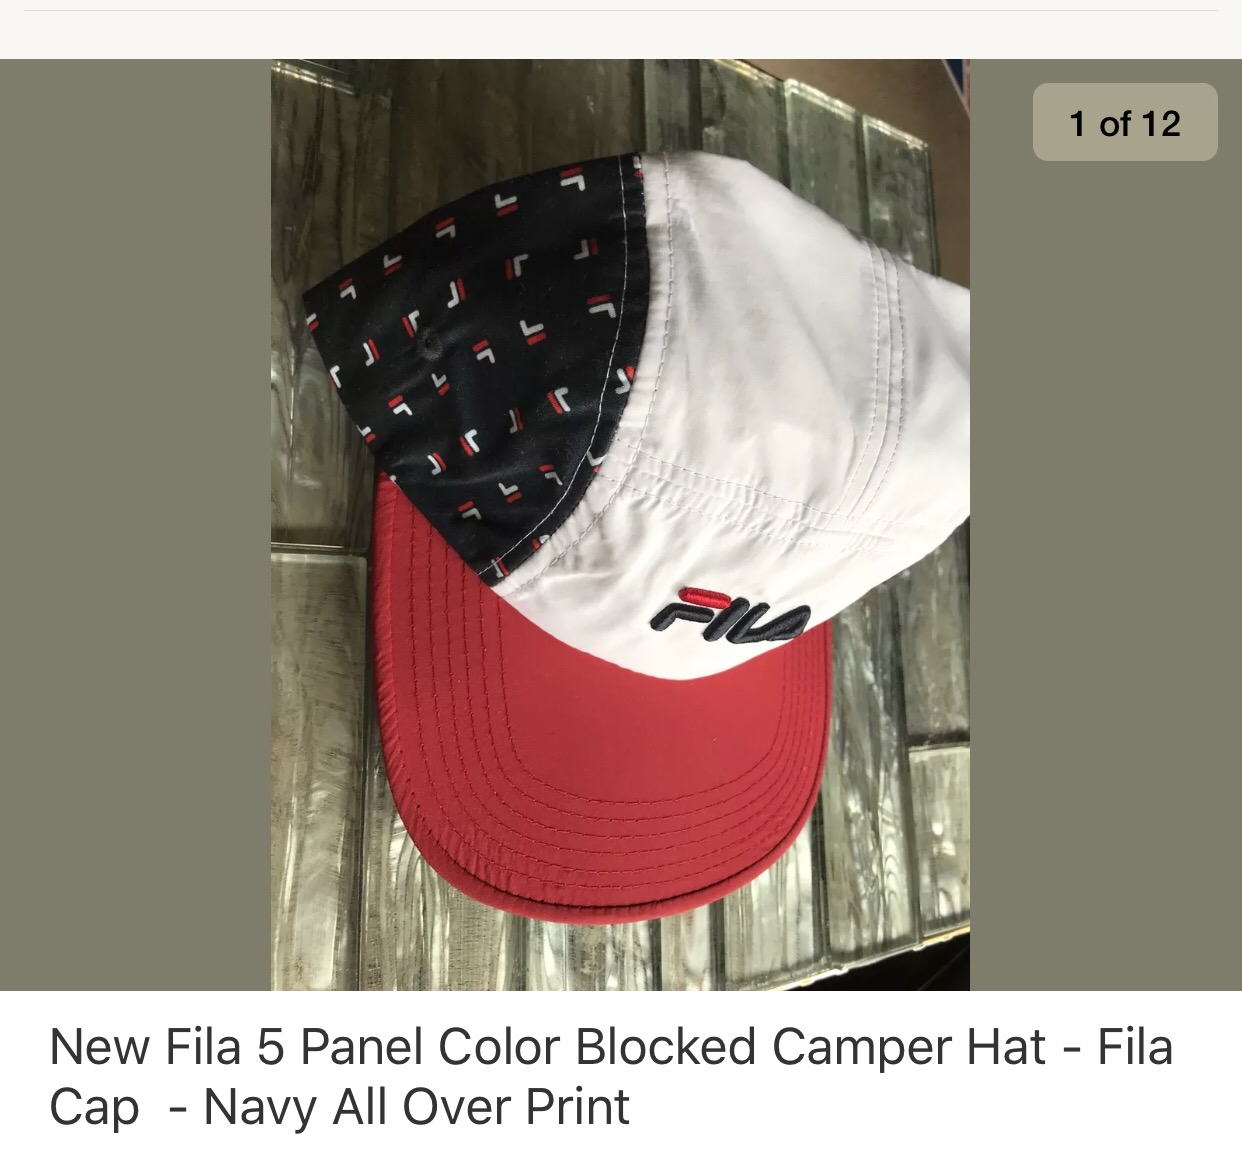 be92ff8f42b Fila New Navy All Over Five Panel Camp Hat Size one size - Hats for Sale -  Grailed